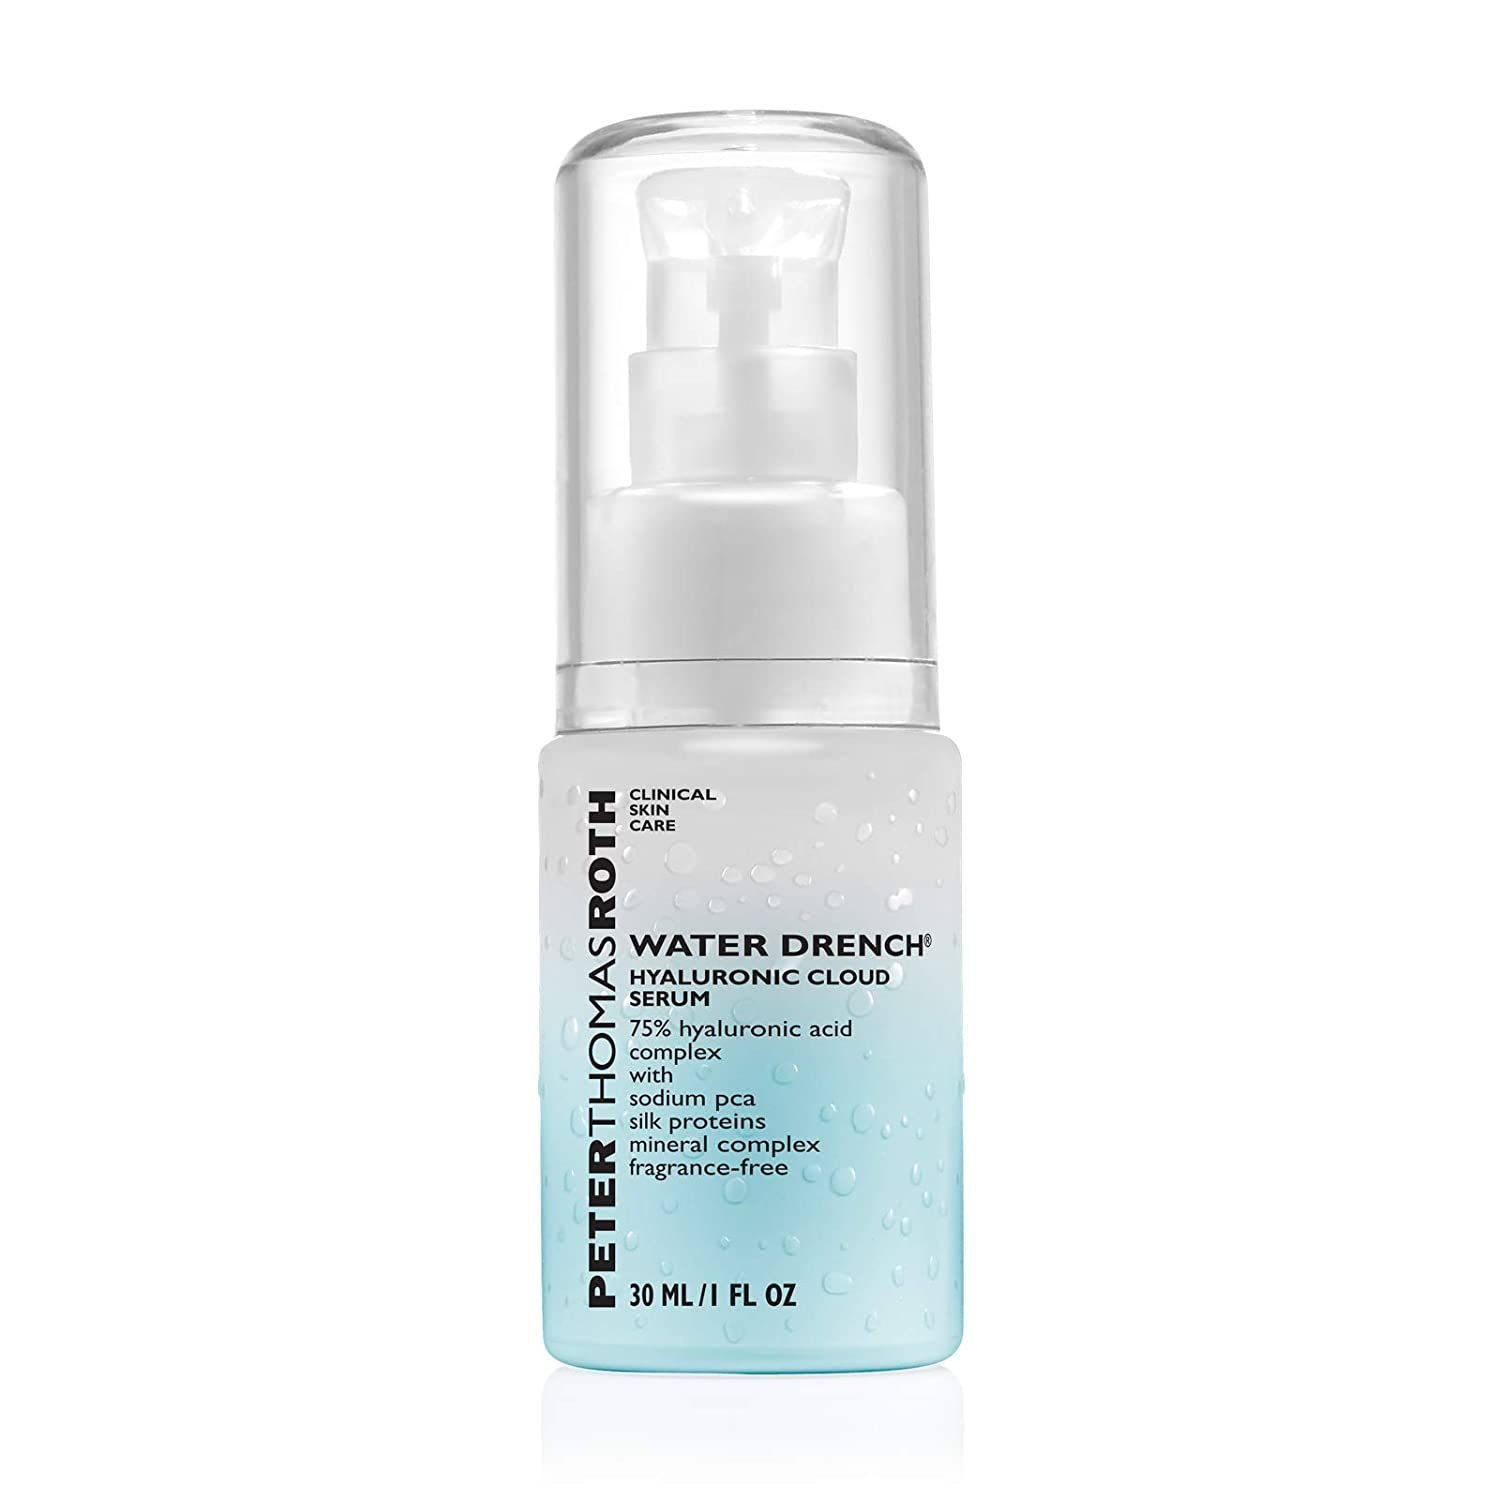 Peter Thomas Roth Water Drench Hyaluronic Liquid Gel Cloud Serum, Hyaluronic Acid Serum for Fine Lines and Uneven Texture